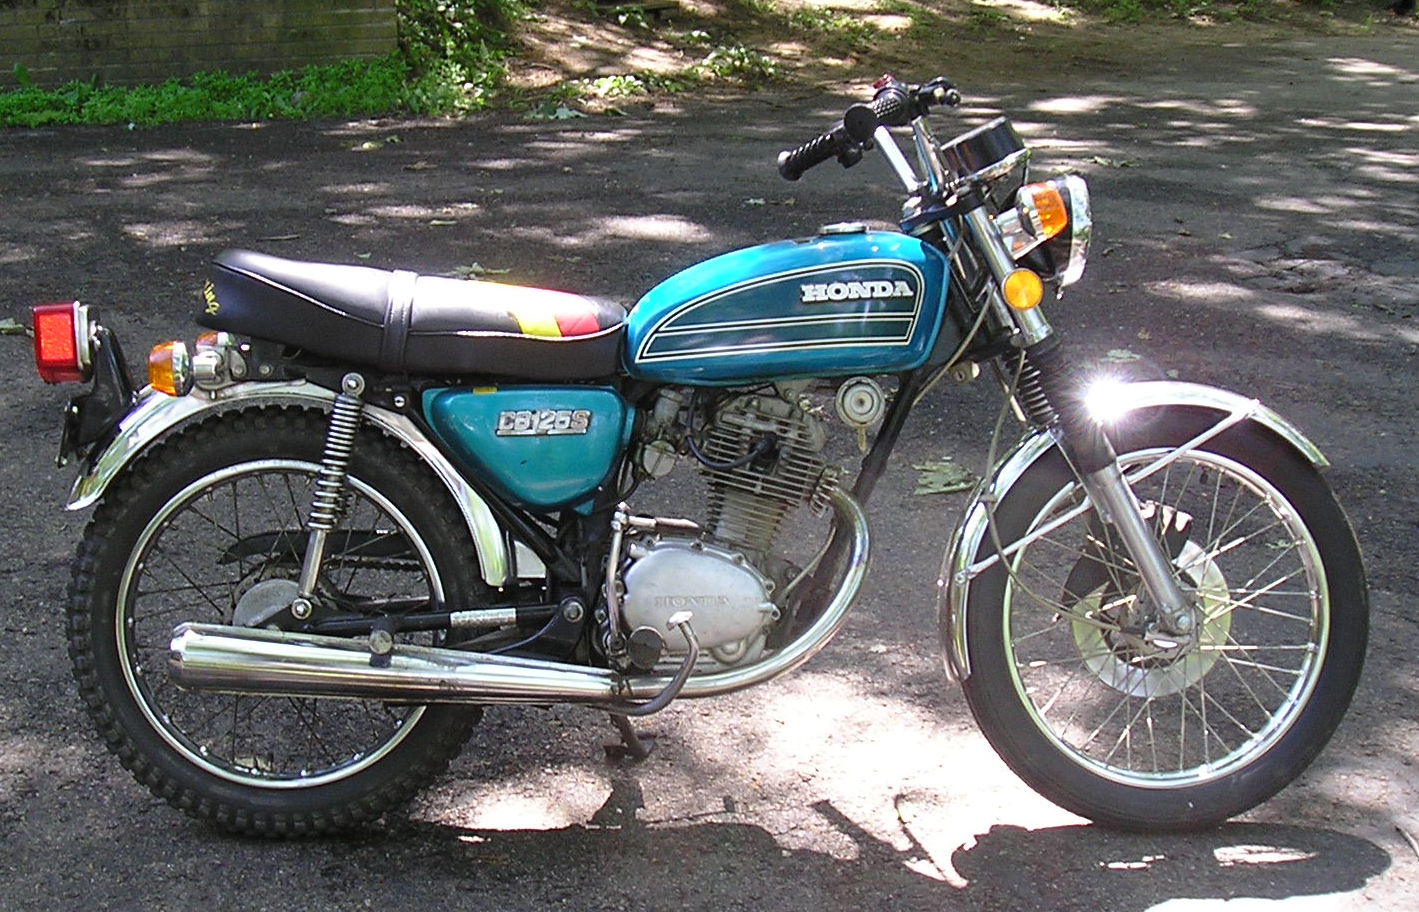 Honda cb 125 - 125er Softchopper